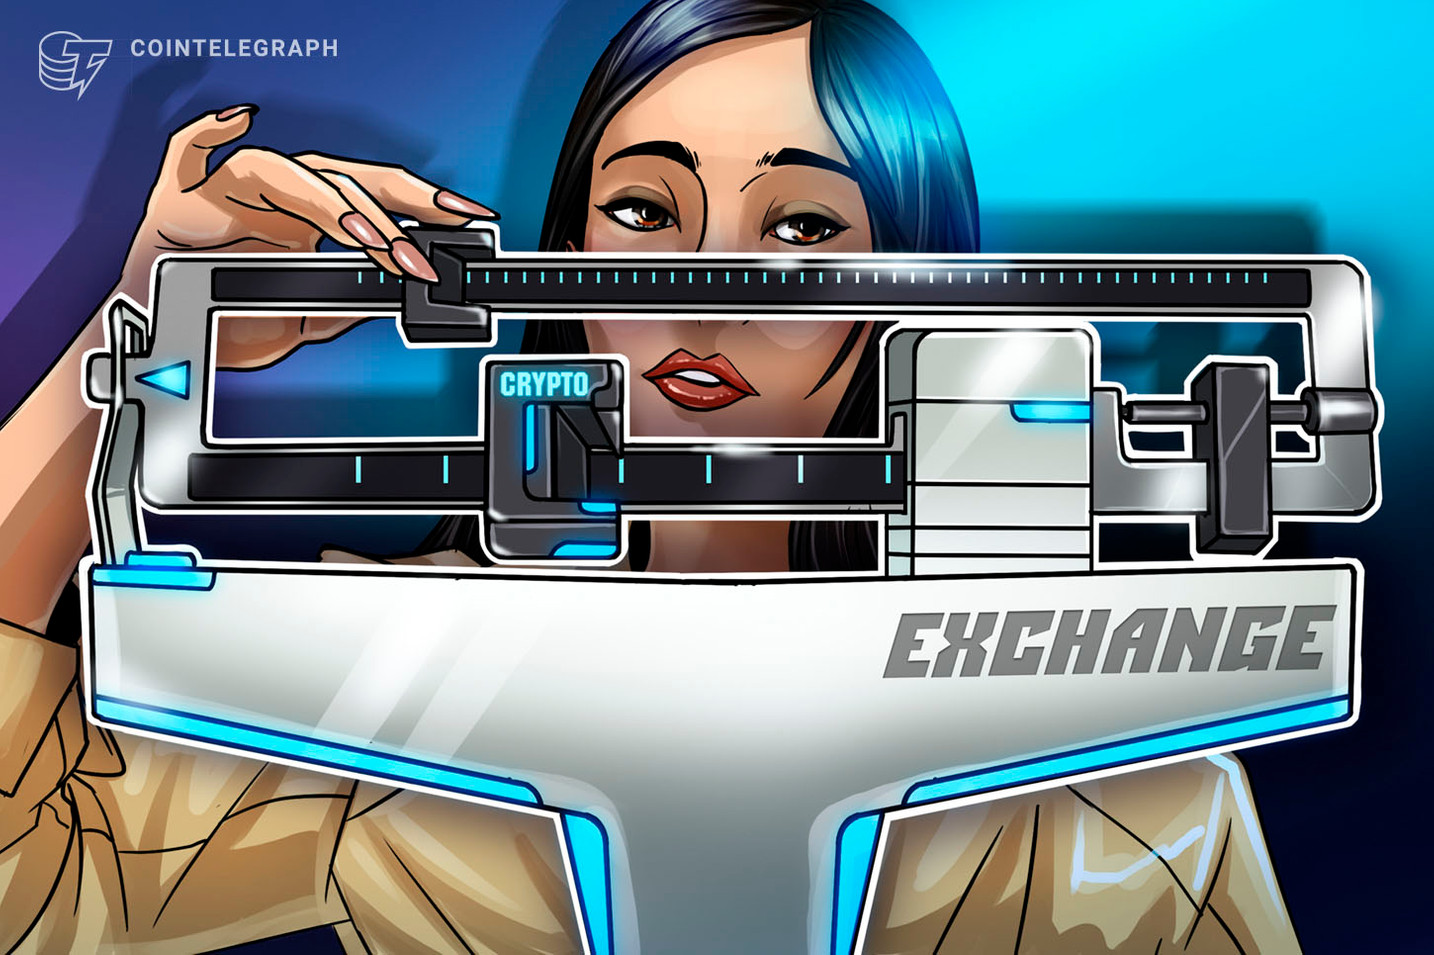 Mexican Crypto Exchange Bitso Seals DLT License from Gibraltar Regulator